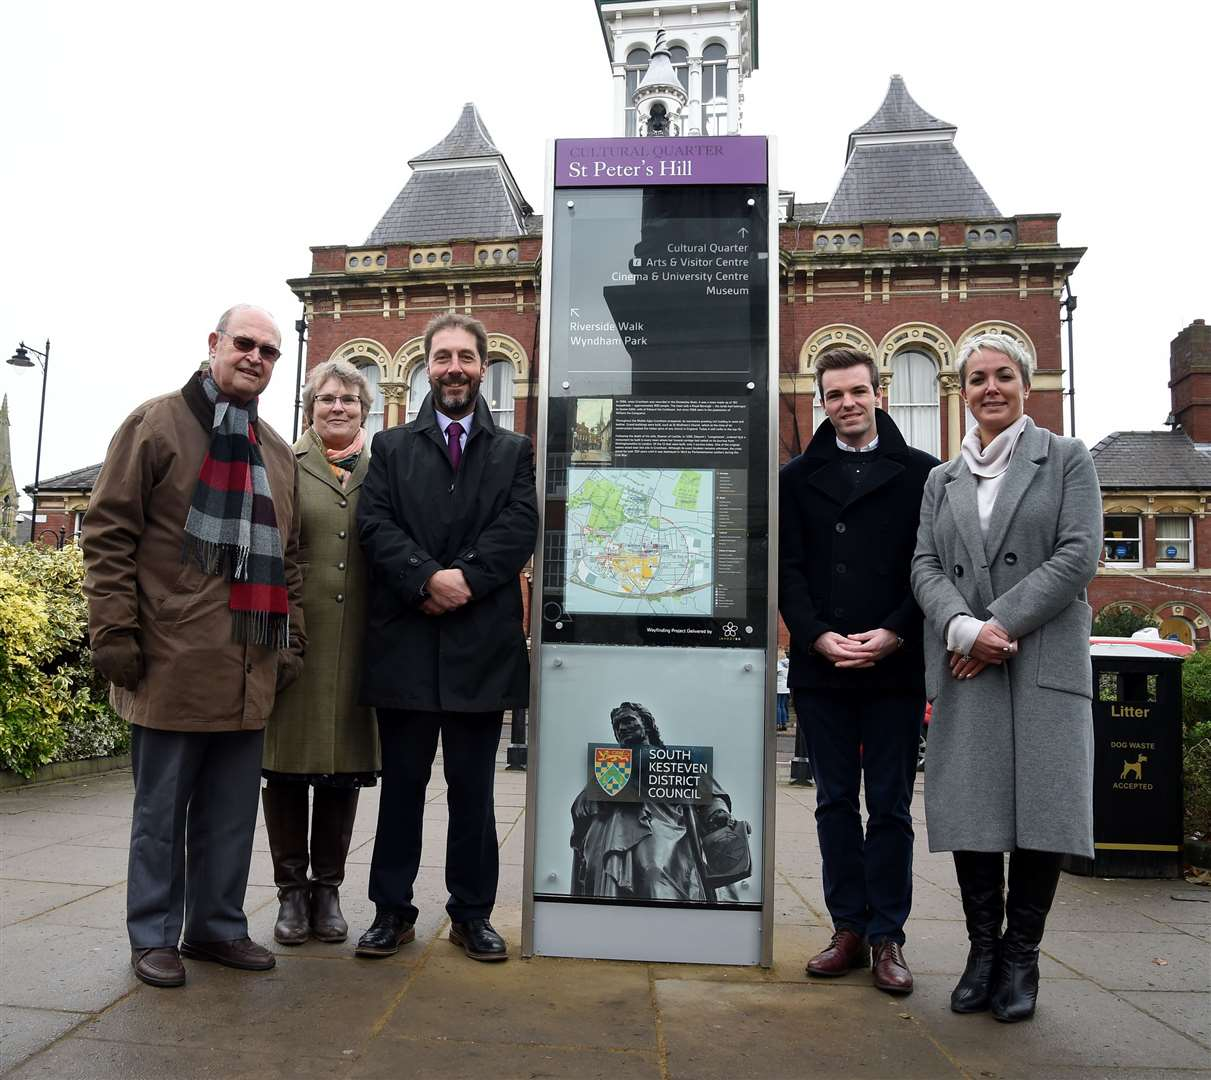 Pictured with the wayfinding board on St Peter's Hill are, from left - Courtney Finn, Ruth Crook, Steve Bowyer, Coun Kelham Cooke and Coun Helen Goral. (24619892)